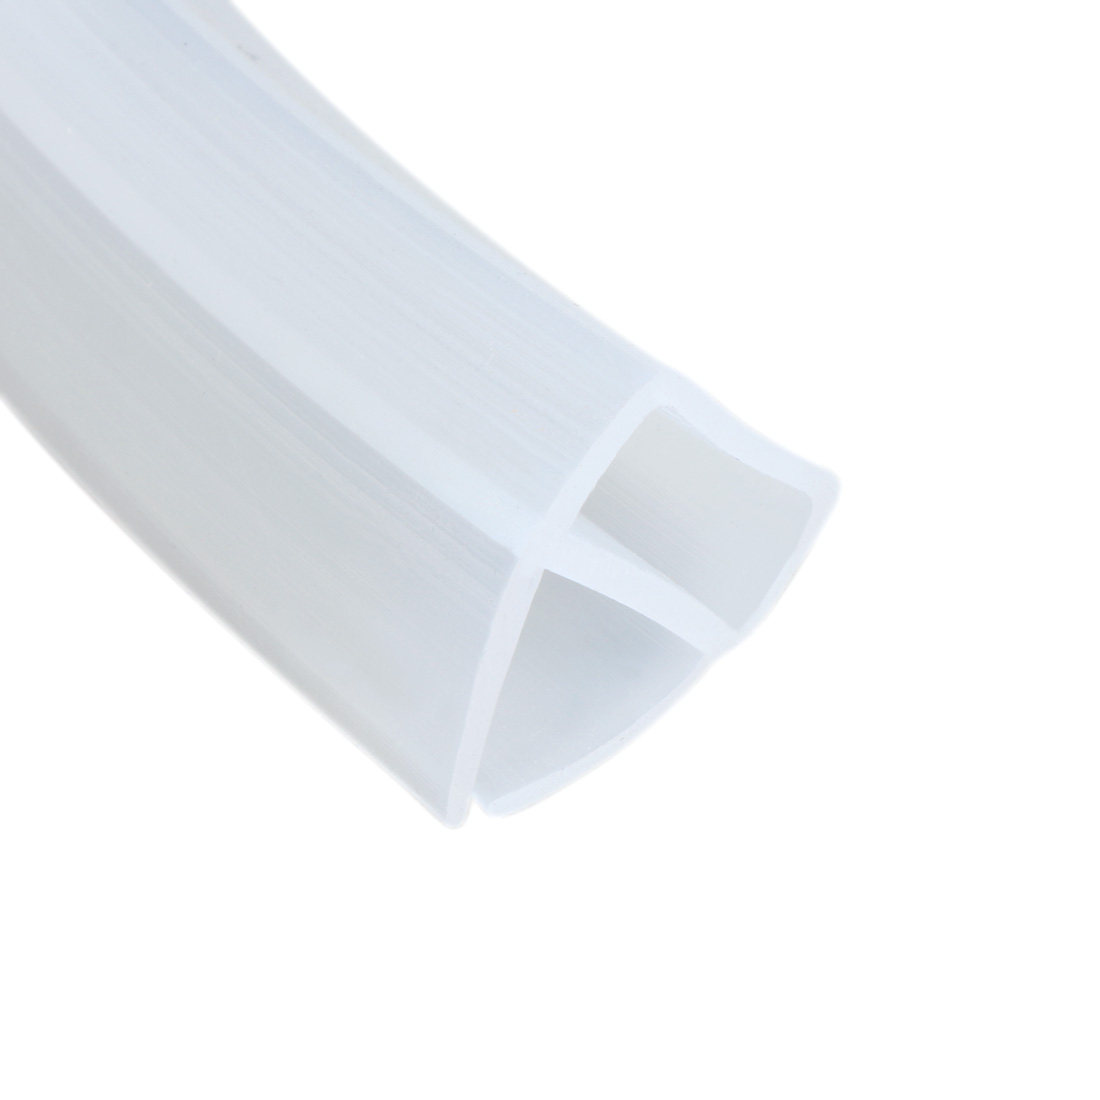 39-inch U Shaped Frameless Window Shower Door Seal Clear for 3/8-inch Glass